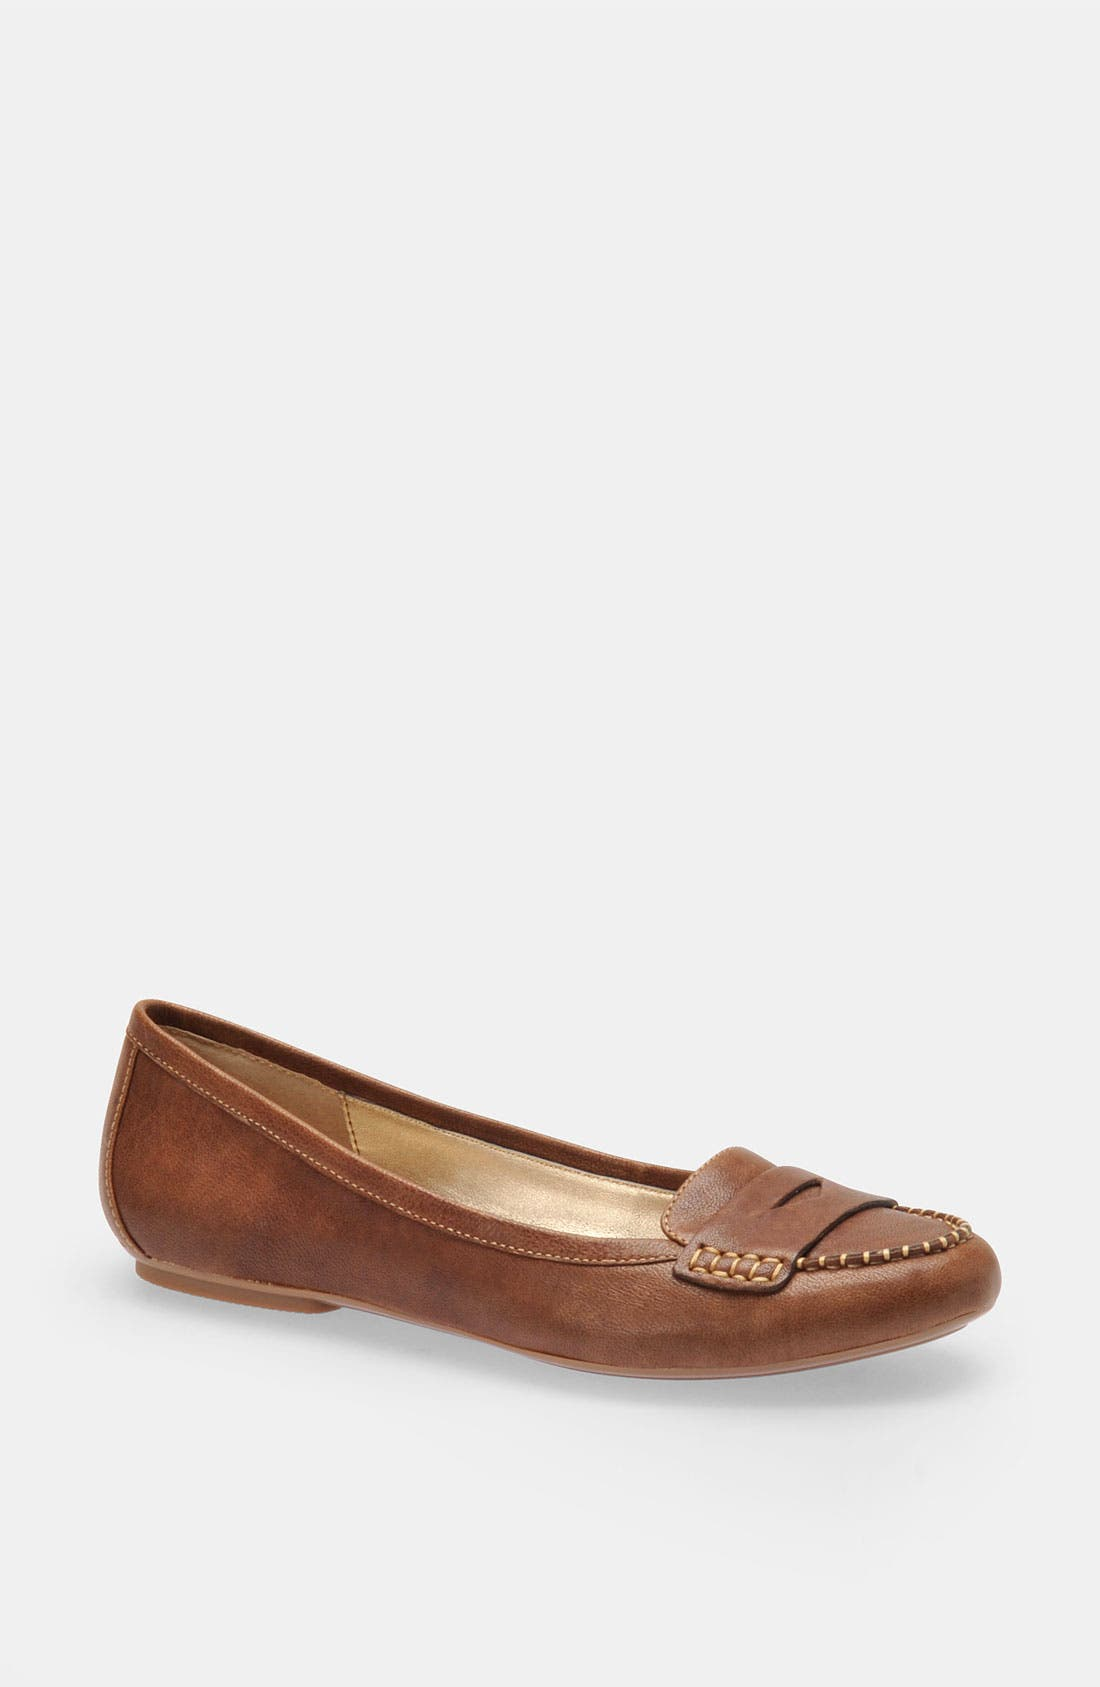 Main Image - Söfft 'Cecille' Flat Moccasin